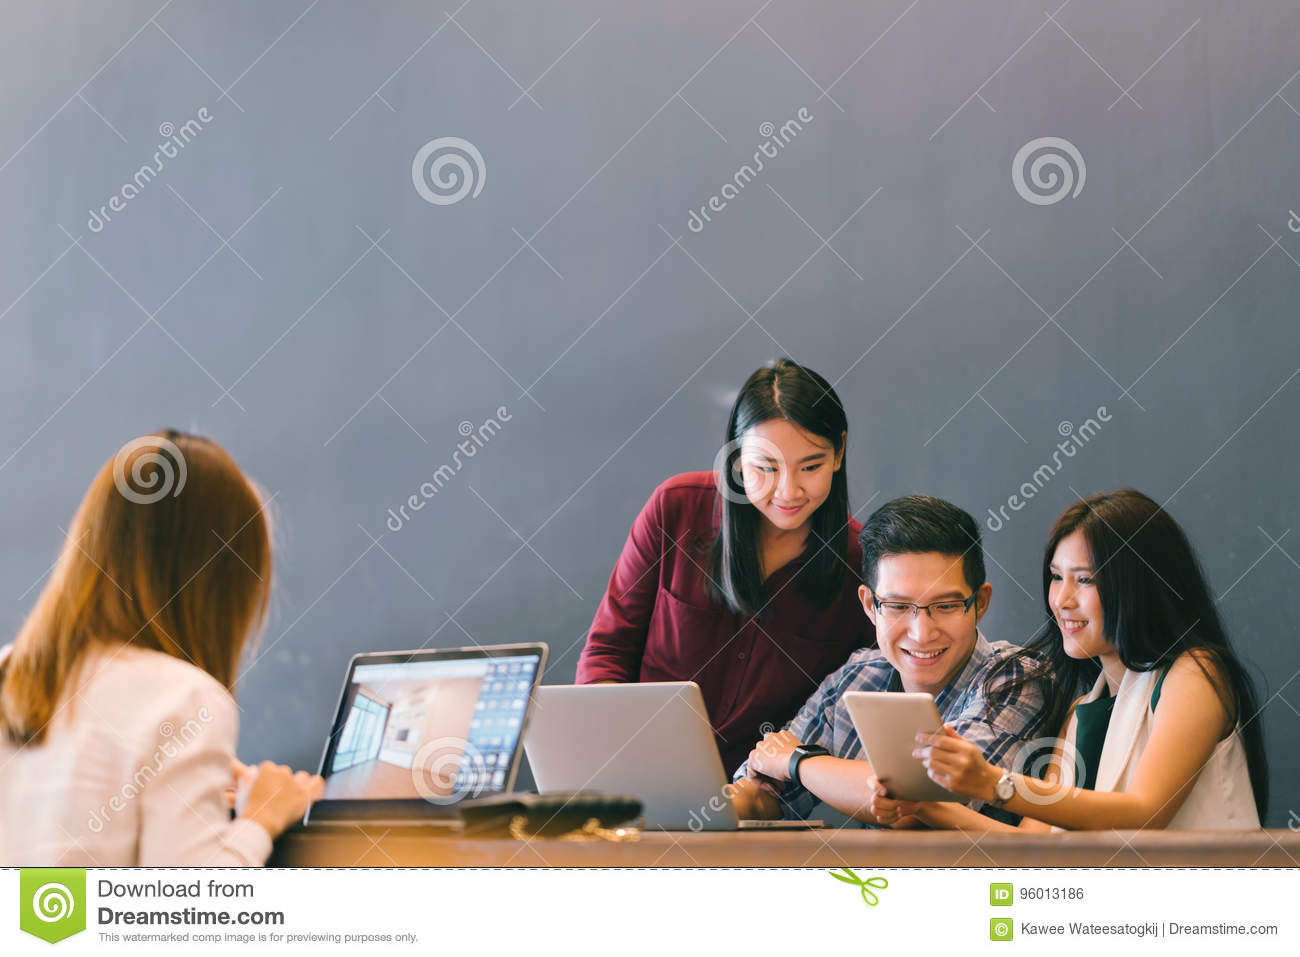 Group of young Asian business colleagues in team casual discussion, startup project business meeting or happy teamwork brainstorm